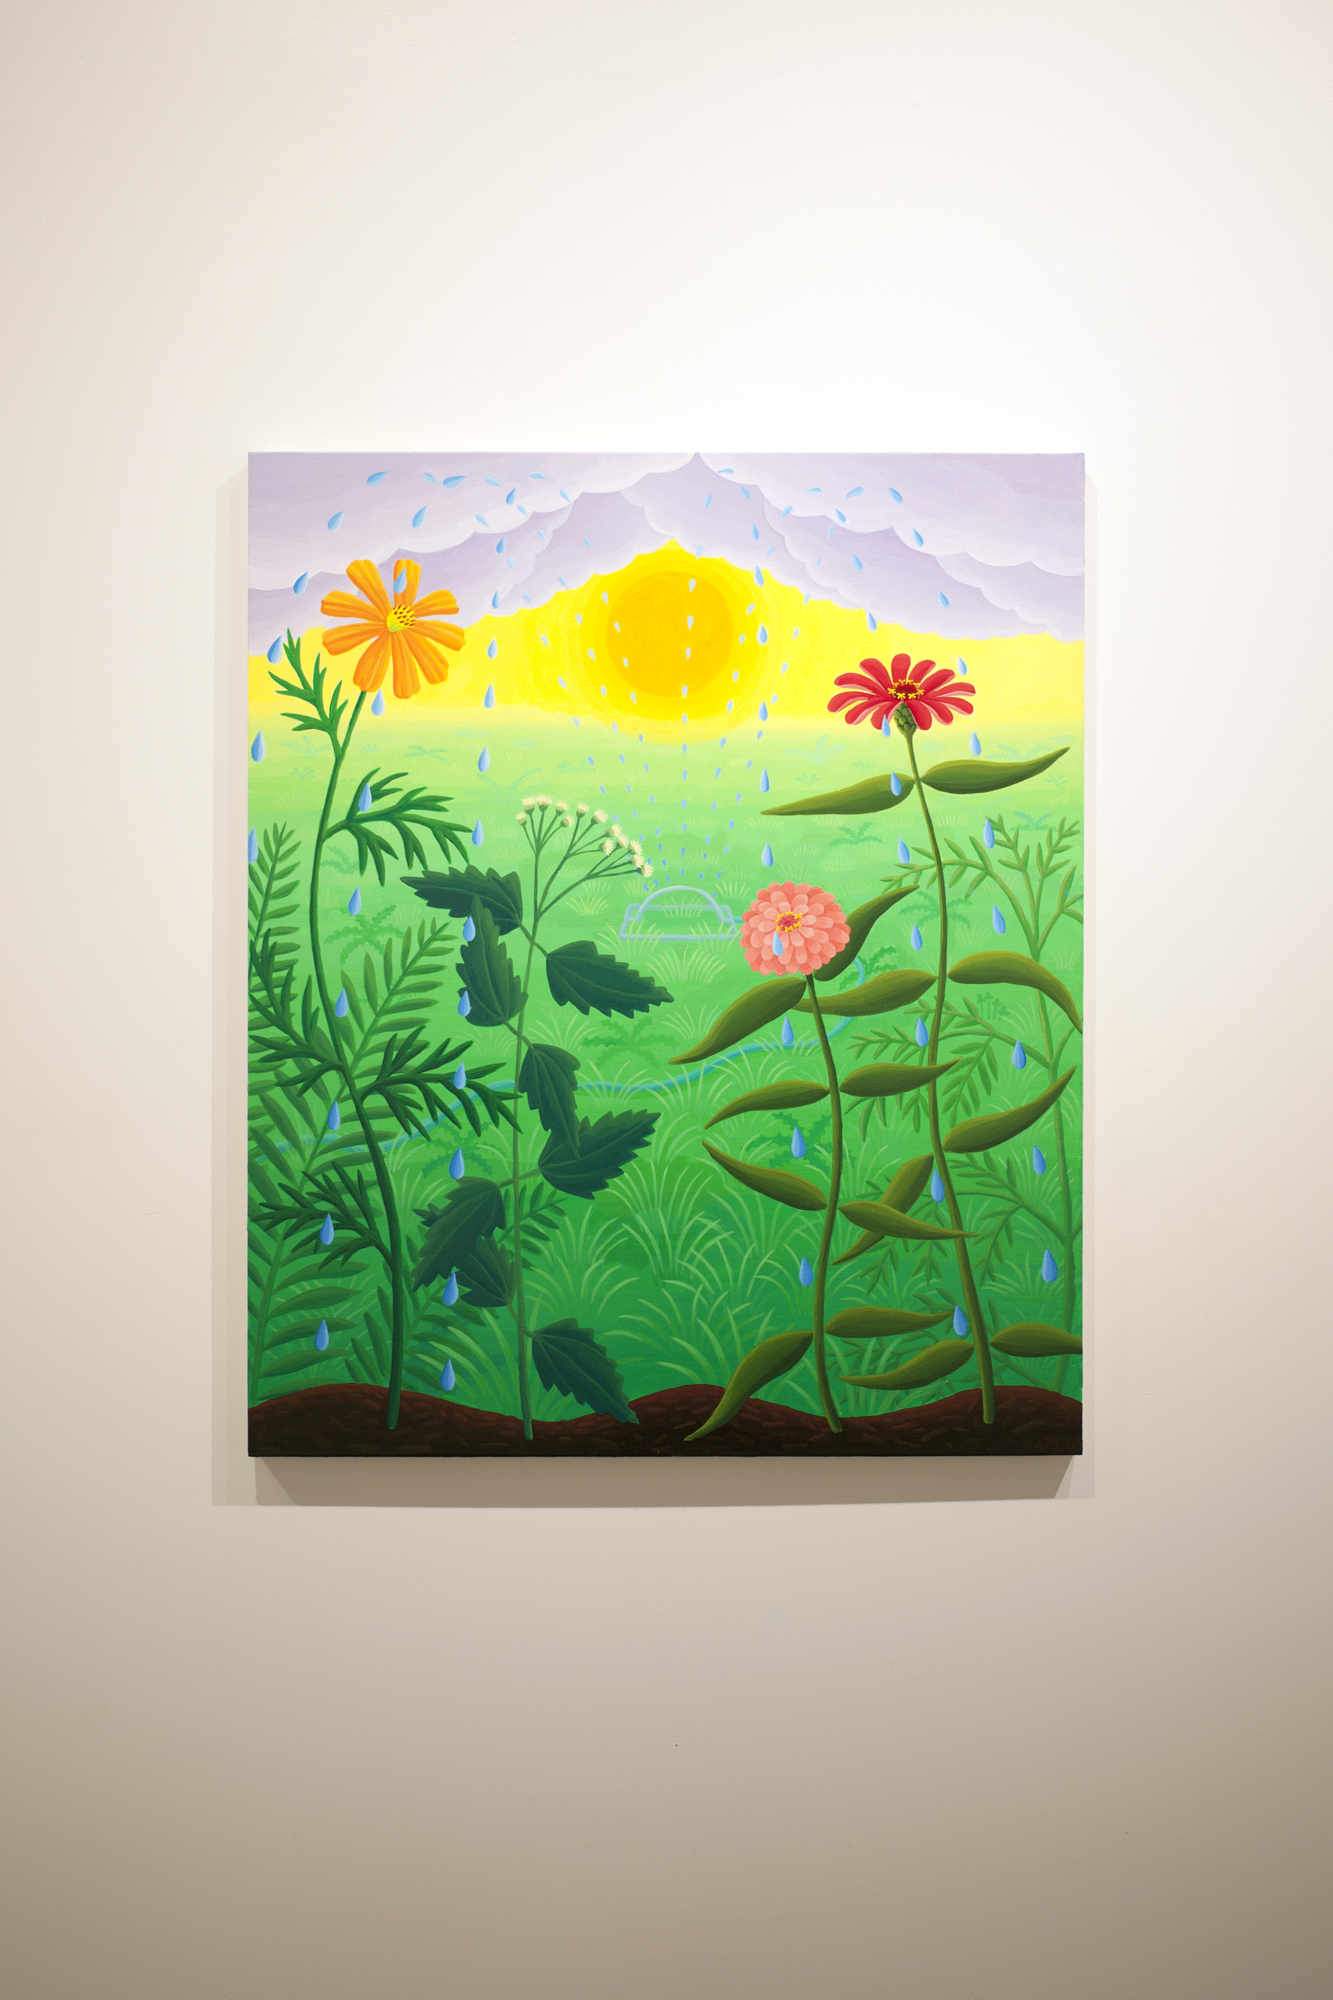 Amy Lincoln,  Sprinkler with Wildflowers , 2018, acrylic on panel, 24 x 20 inches